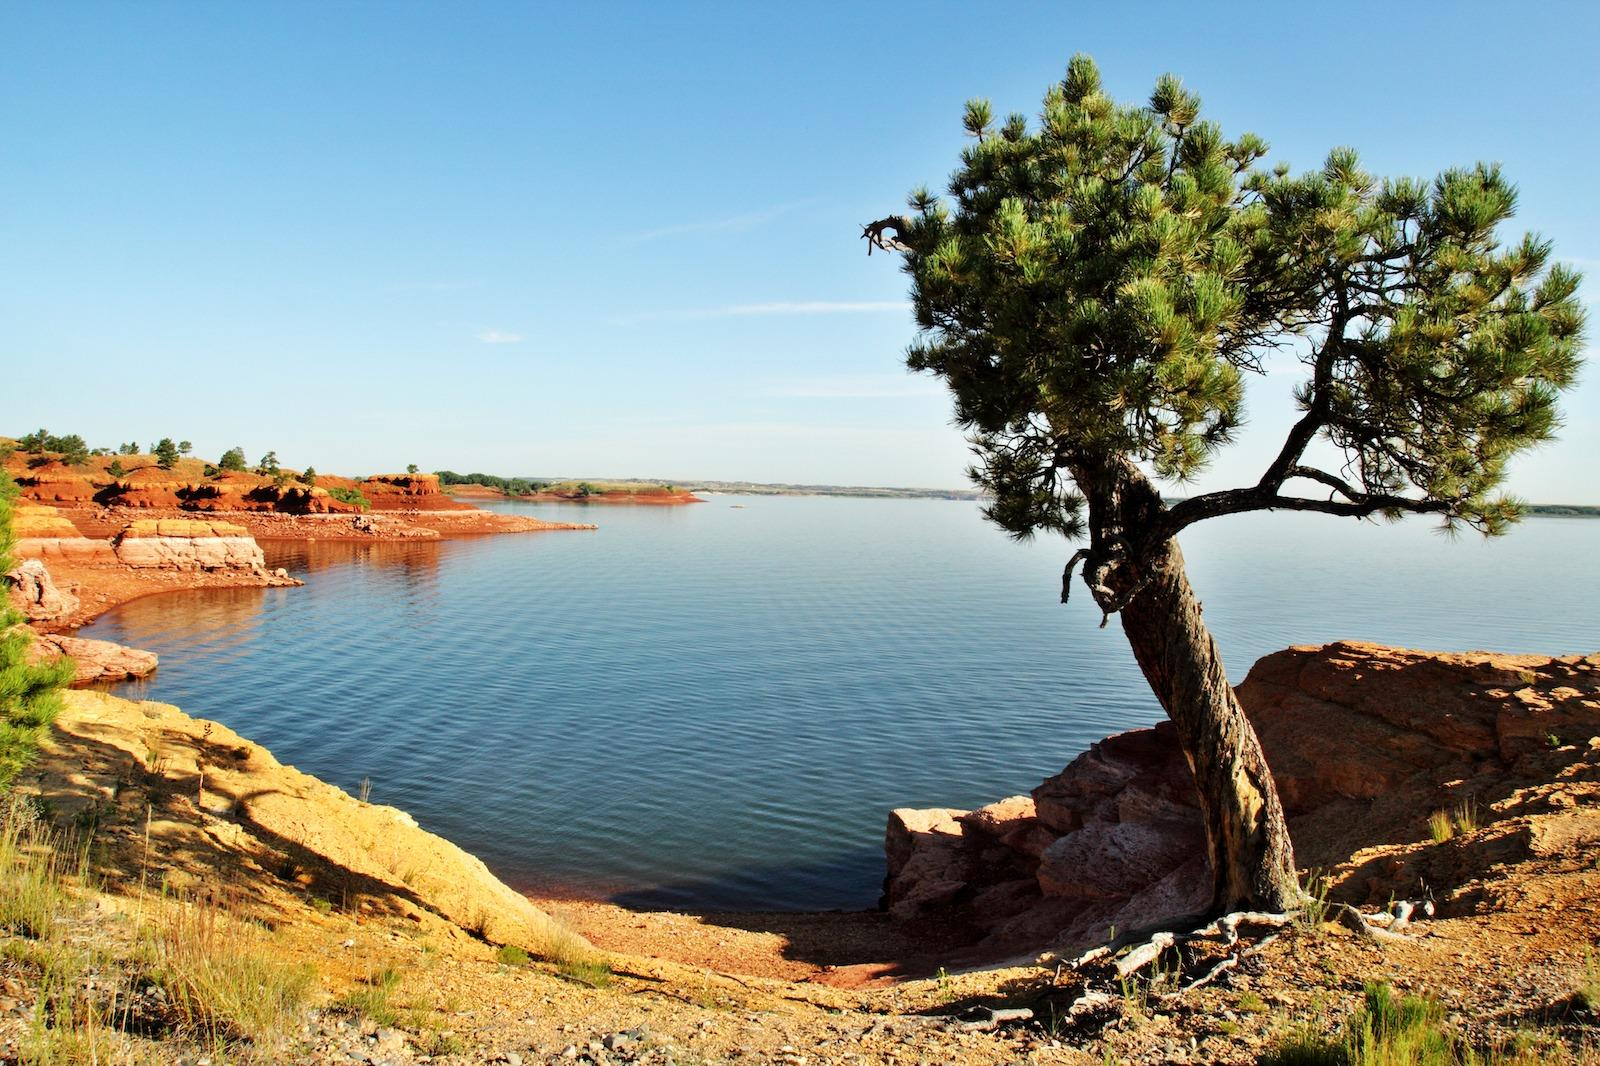 Tree on the shore of Glendo State Park reservoir in Platte County, Wyoming